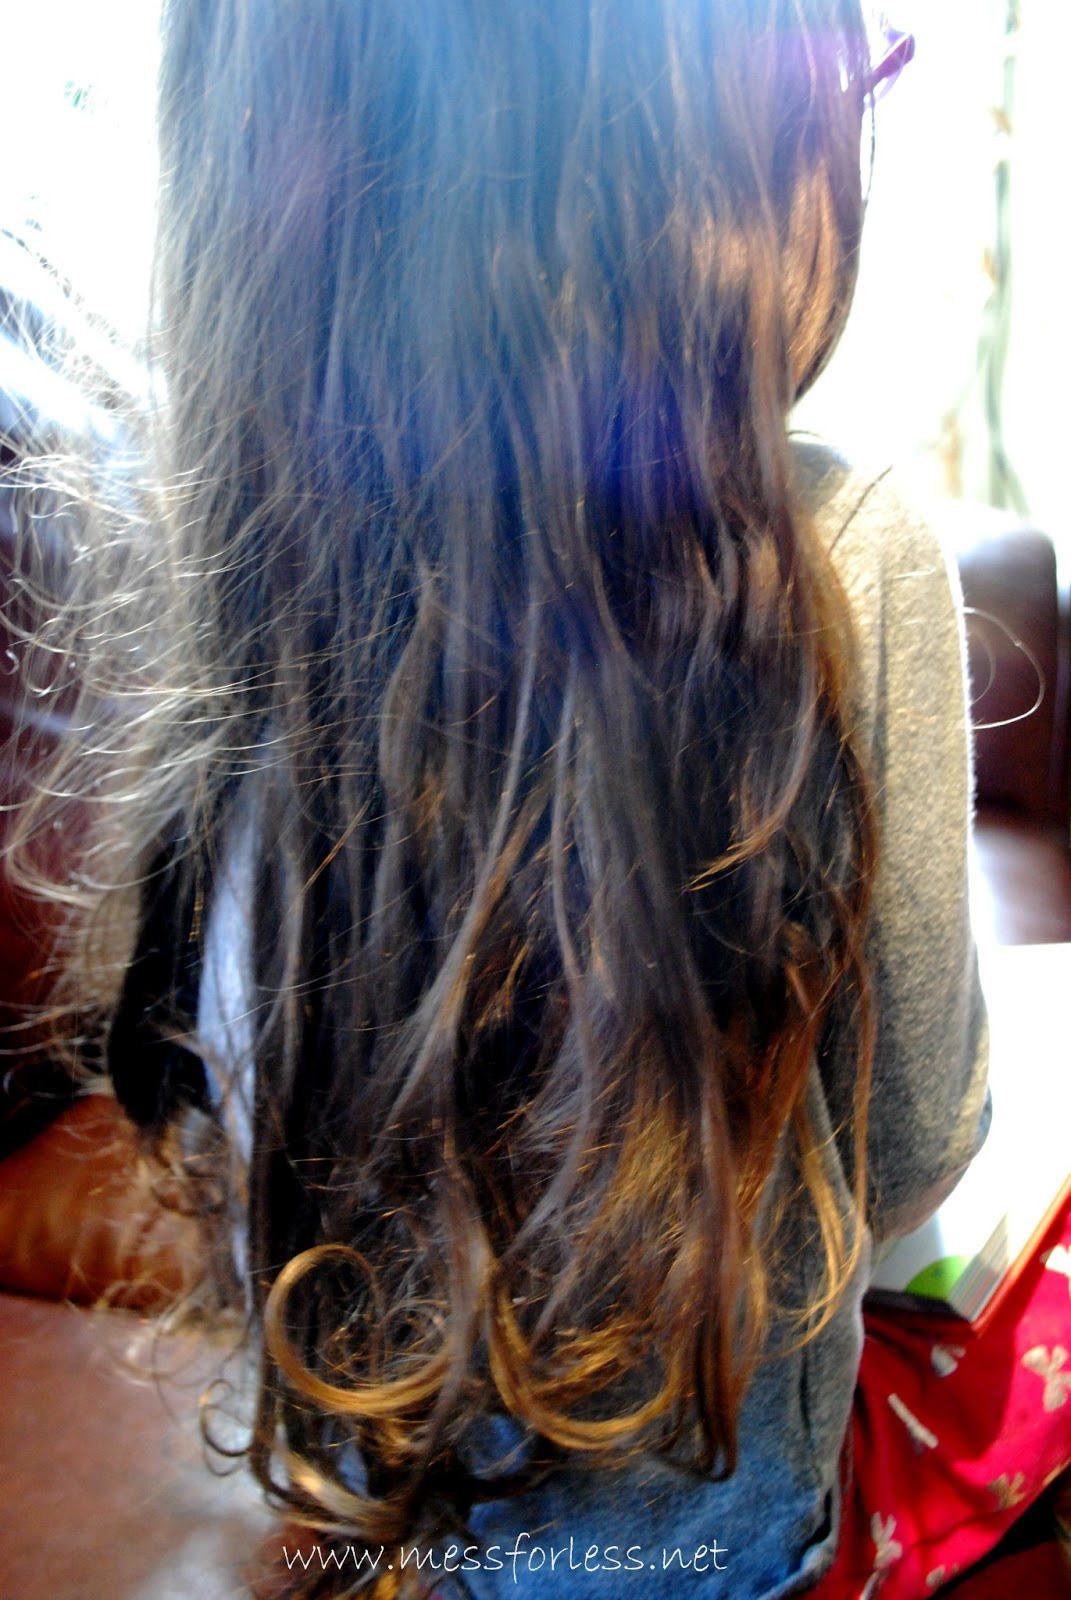 How to untangle the hair